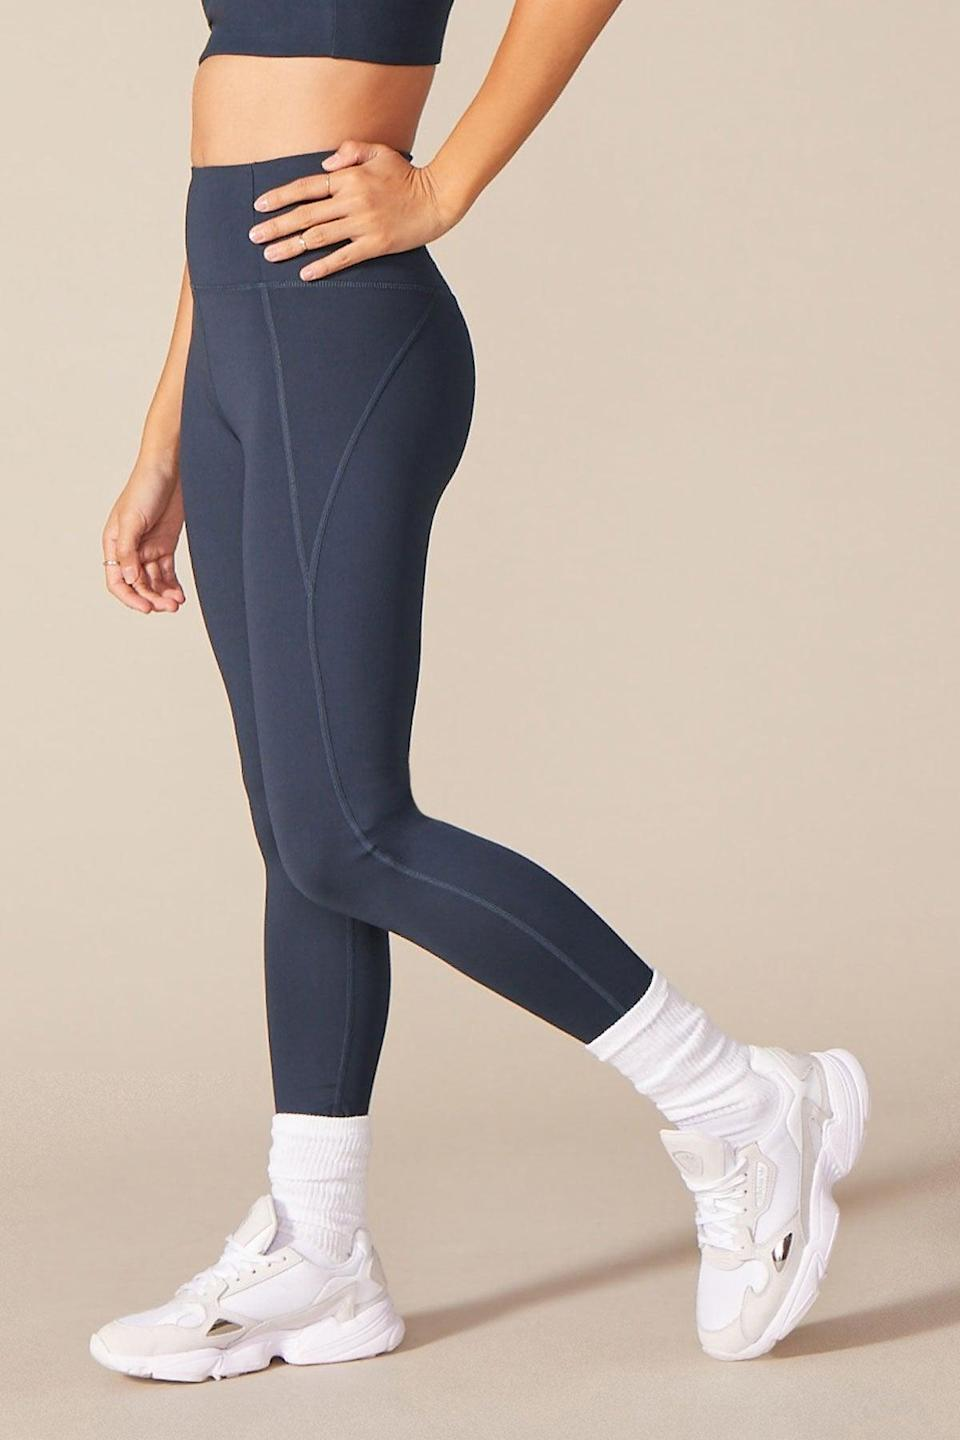 <p>These <span>Girlfriend Collective High Waist Full Length Leggings</span> ($68) are made from recycled water bottles, so they help the planet and your workout. Plus, almost every piece in the collection has a matching sports bra, so if you love a good set, this is the one to shop. The high waist ensures these will stay put through your toughest workouts.</p>